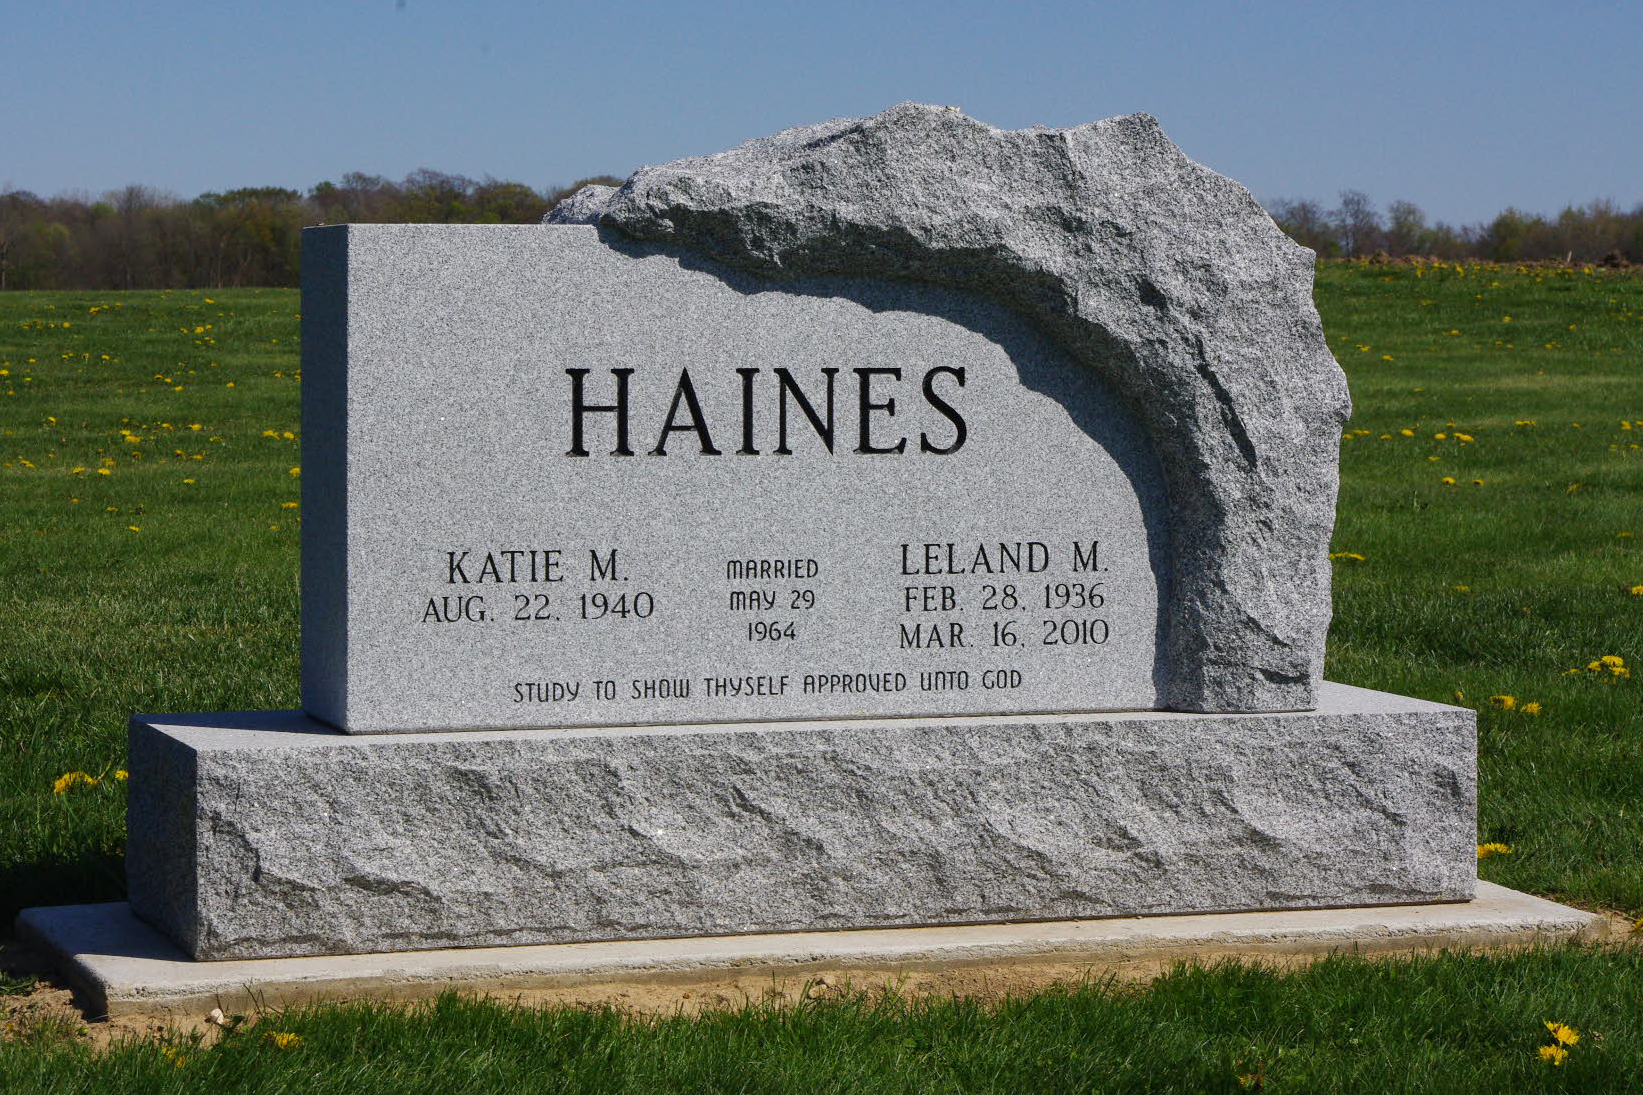 Haines Tablet